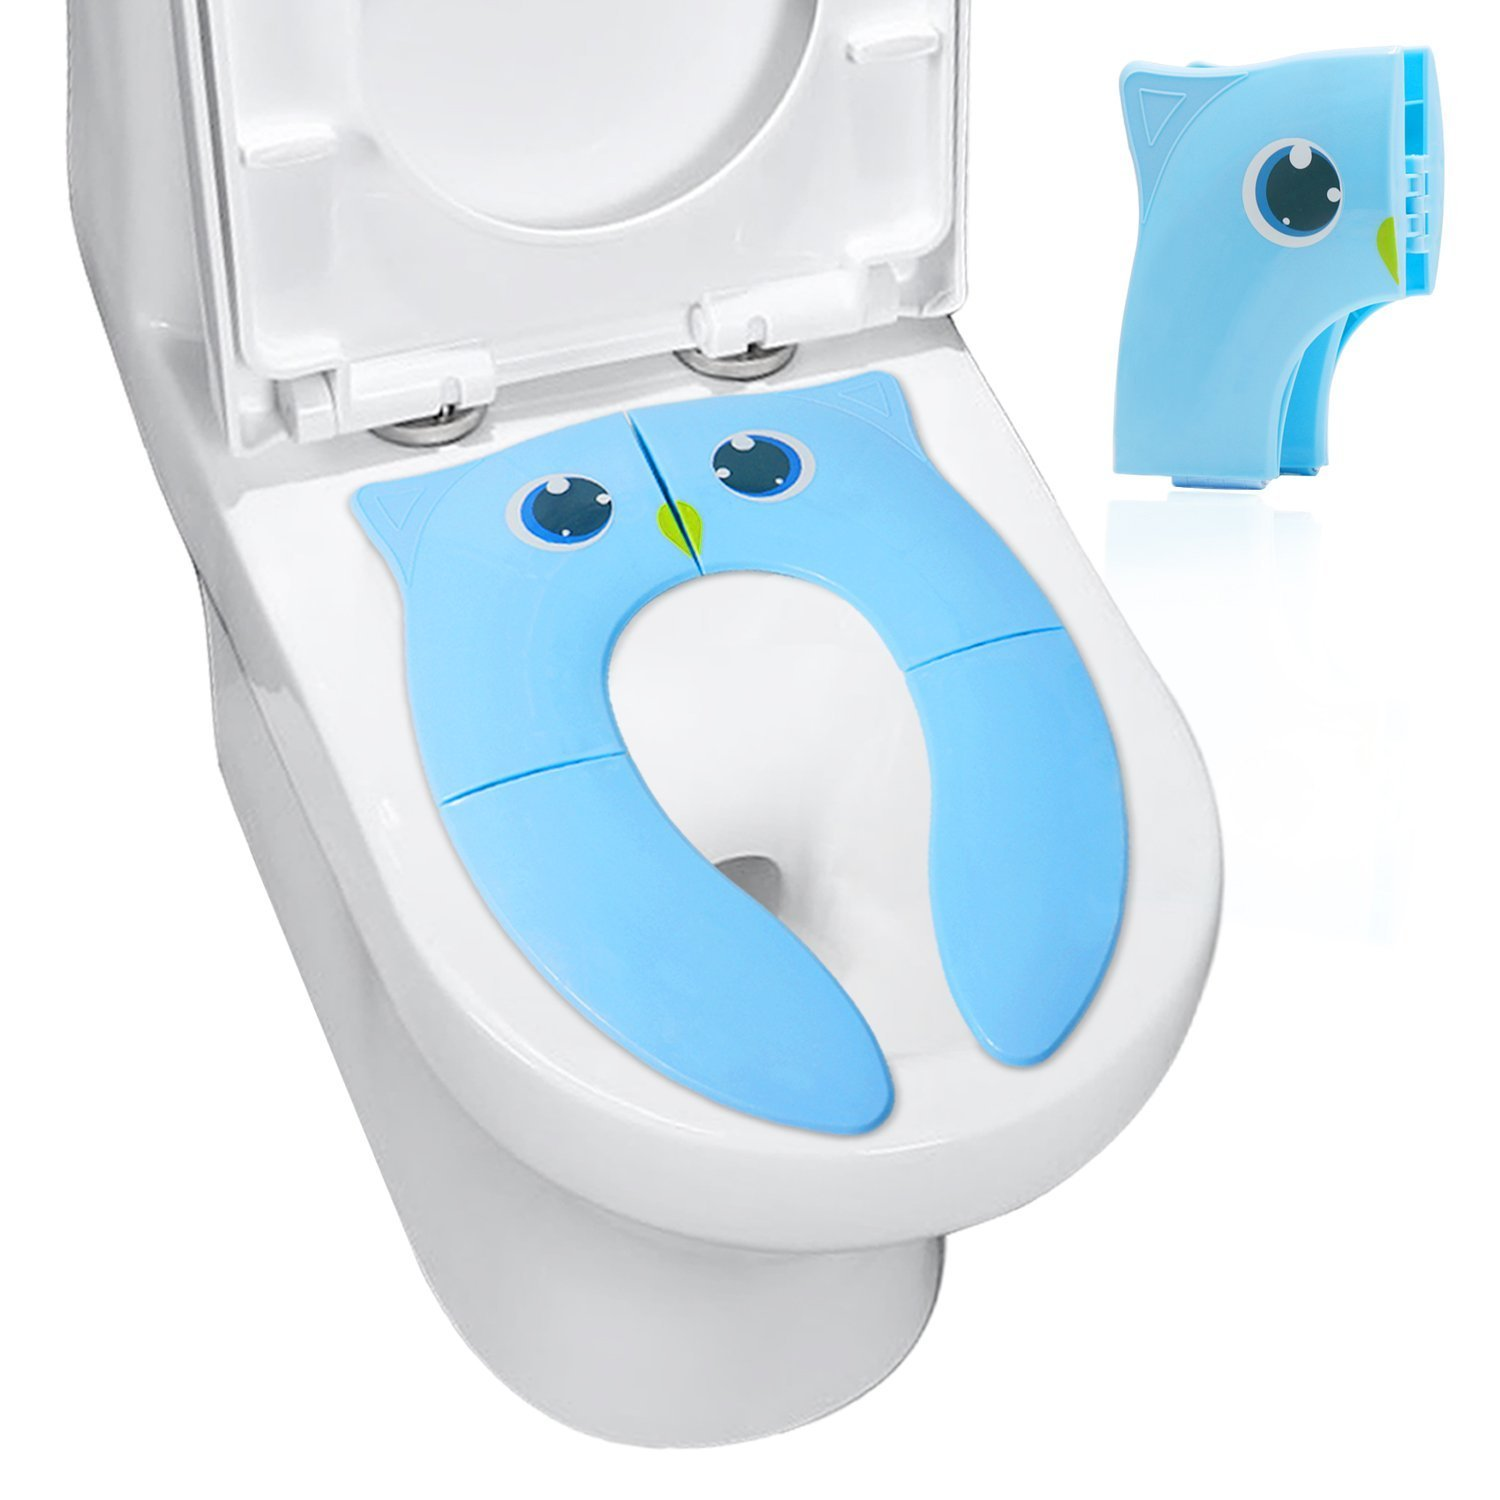 Potty Training Seat Potable Reusable - Folding Toddler Toilet Seat Cover with Non Slip Silicone Pads for Girl Boys FRETOD